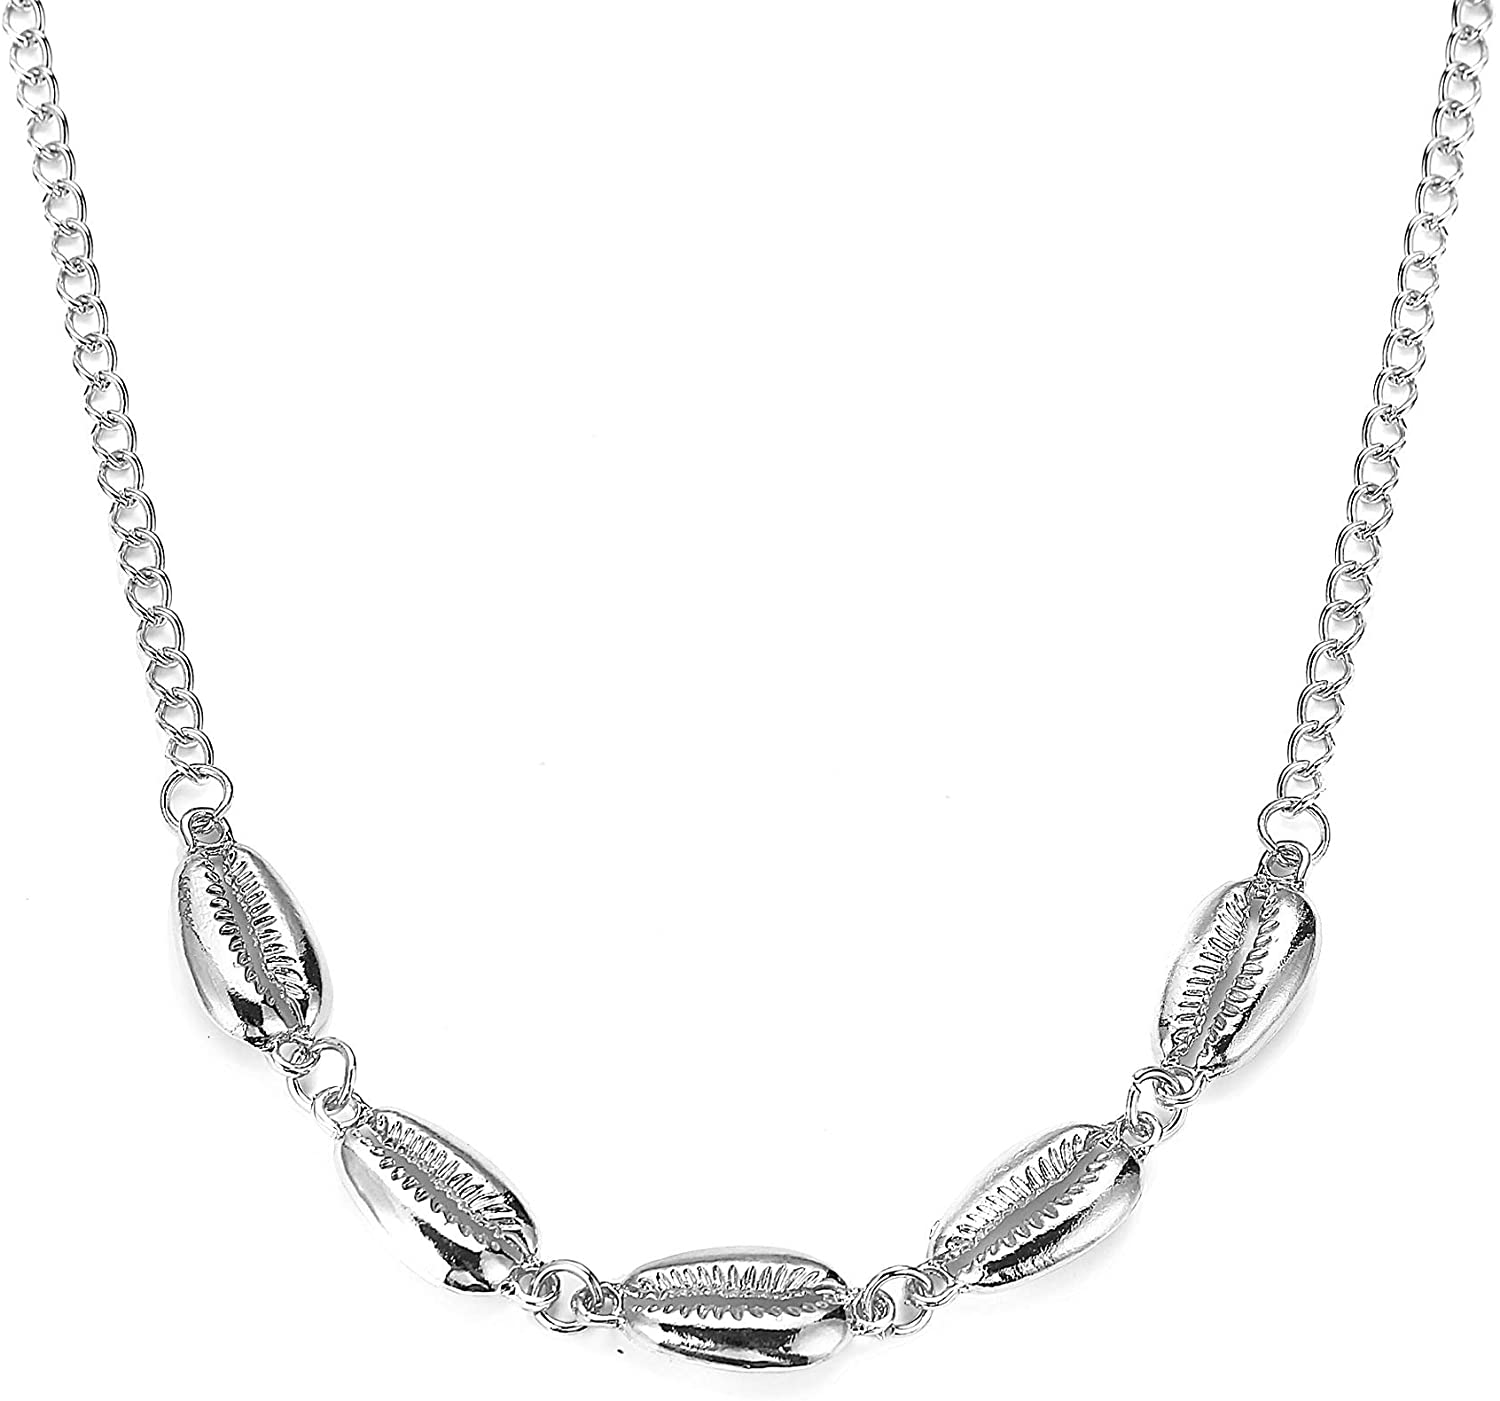 Shanzeh Jewelry Silver Sea Shell Pendant Necklace Dainty Layered with chain GT-GR 467 Silver